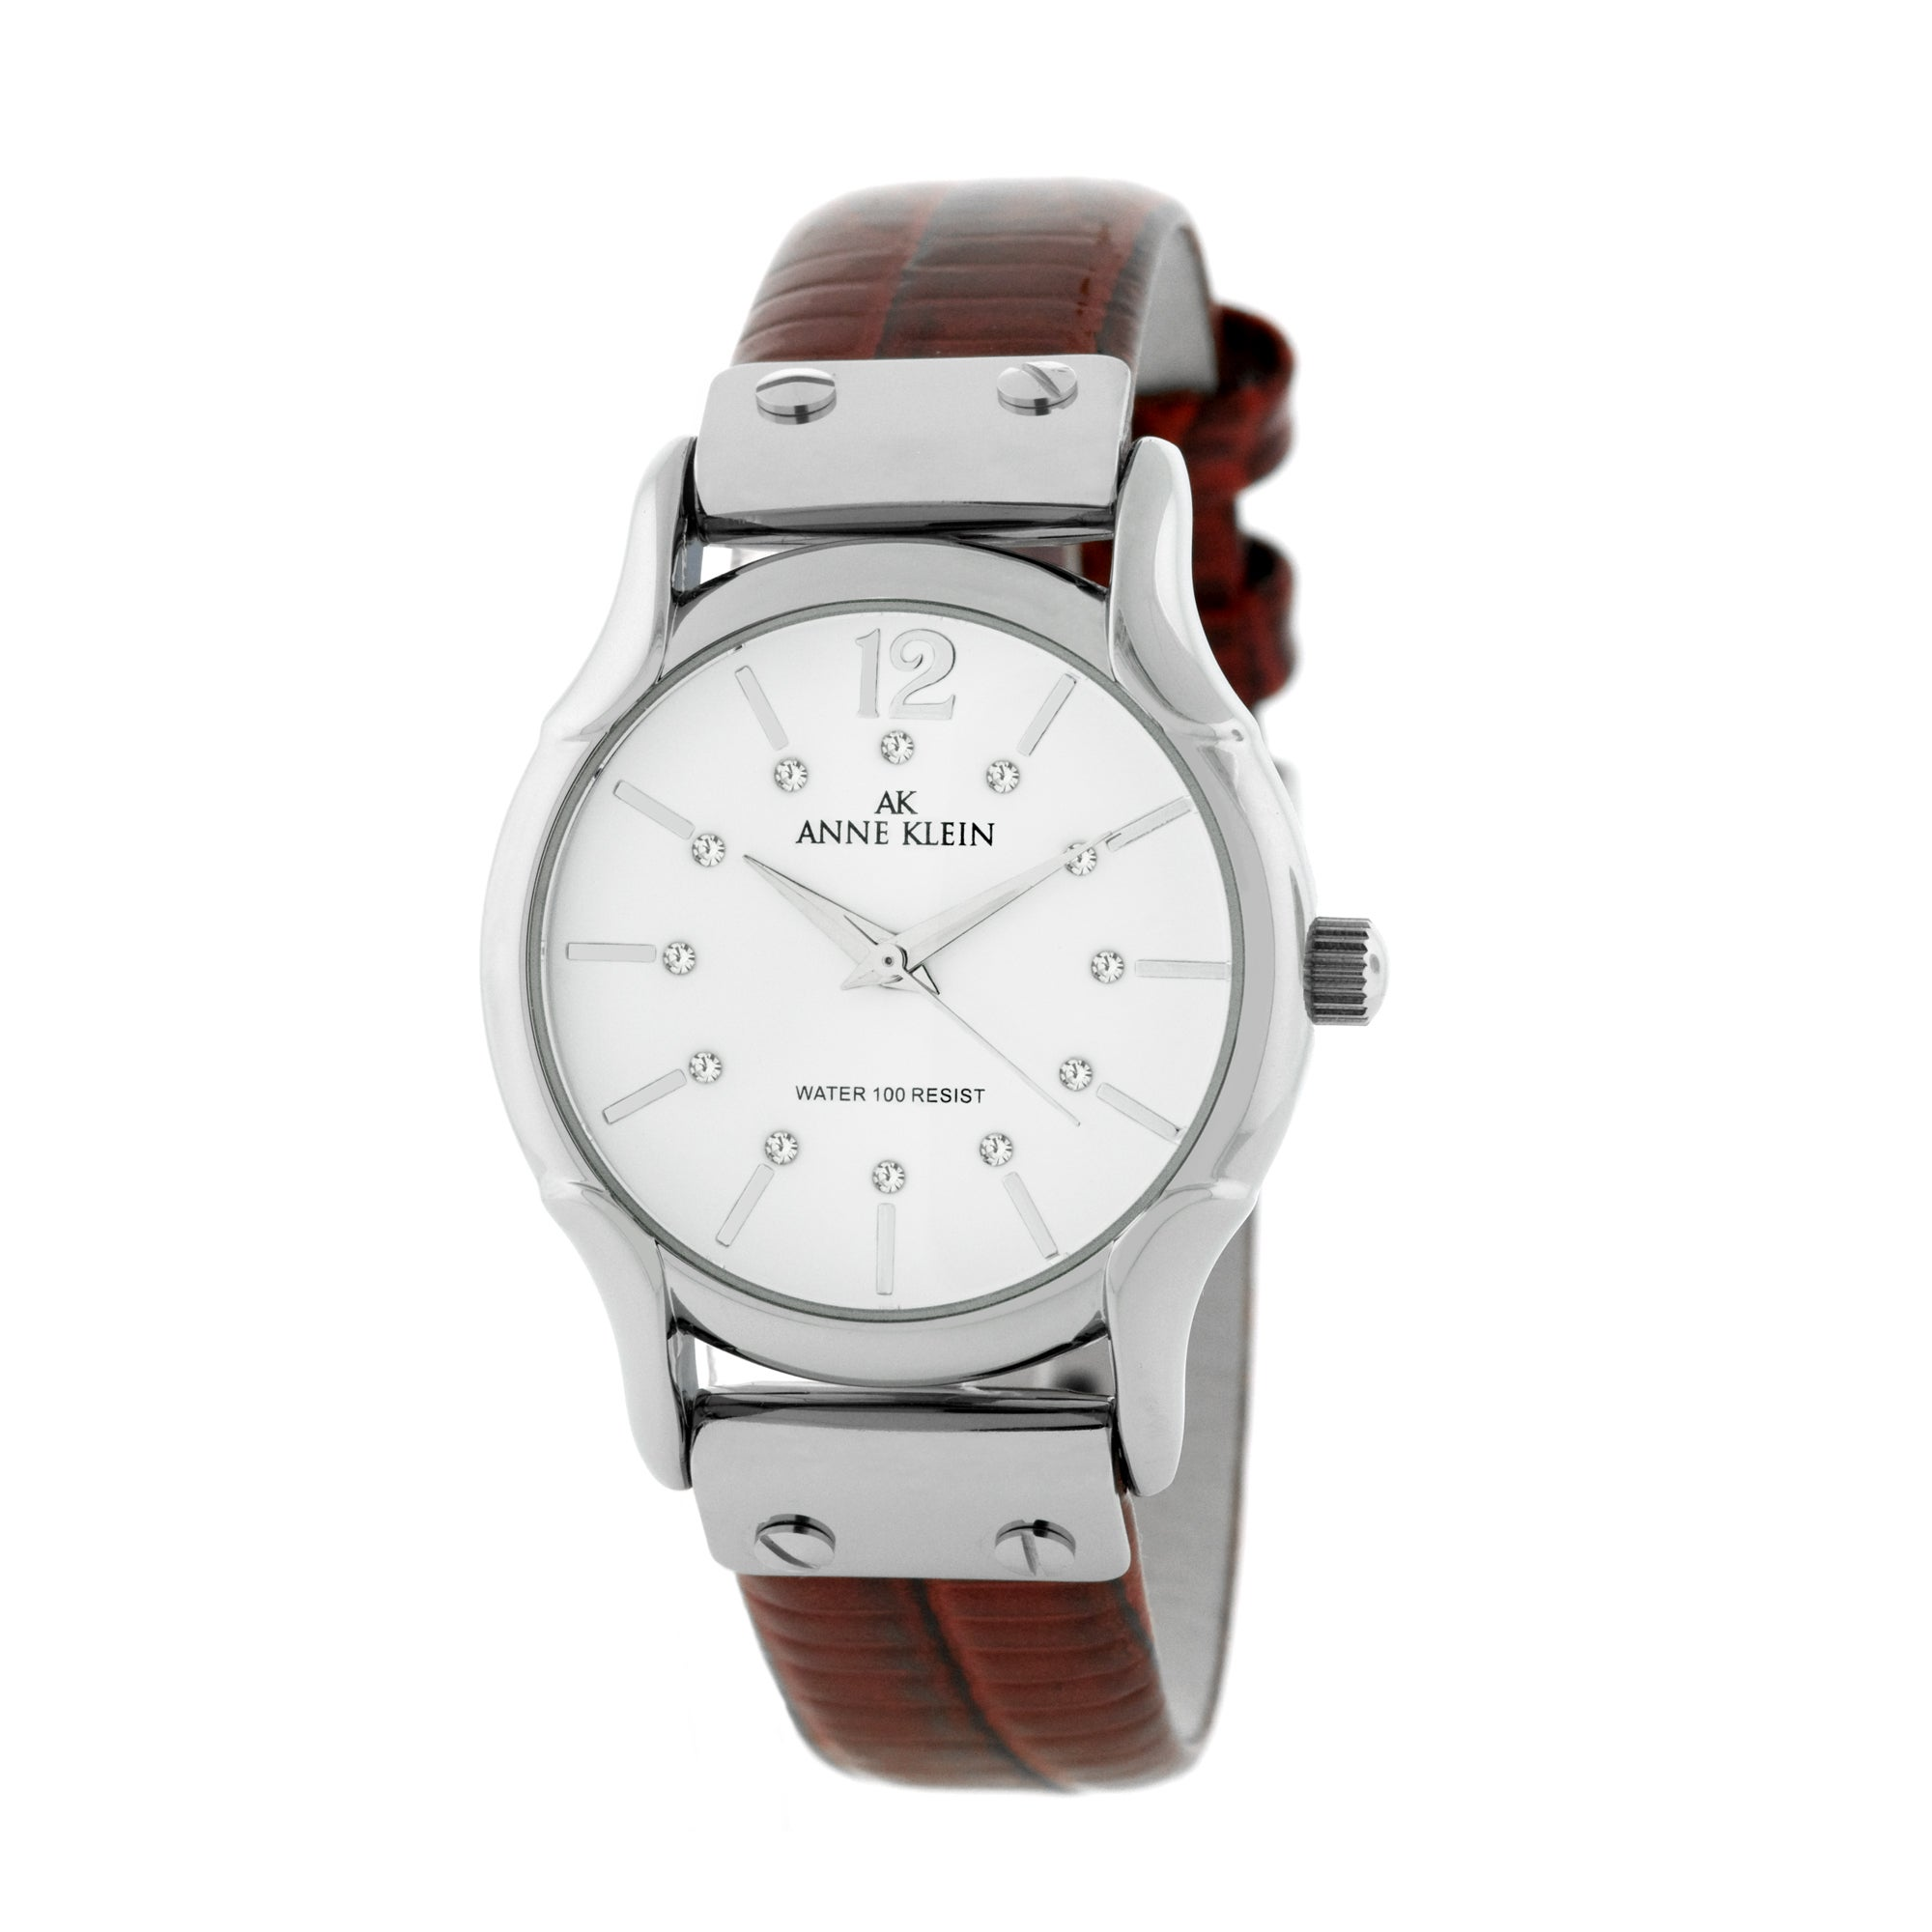 Anne klein red leather strap watch 13993510 shopping big discounts on anne for Anne klein leather strap